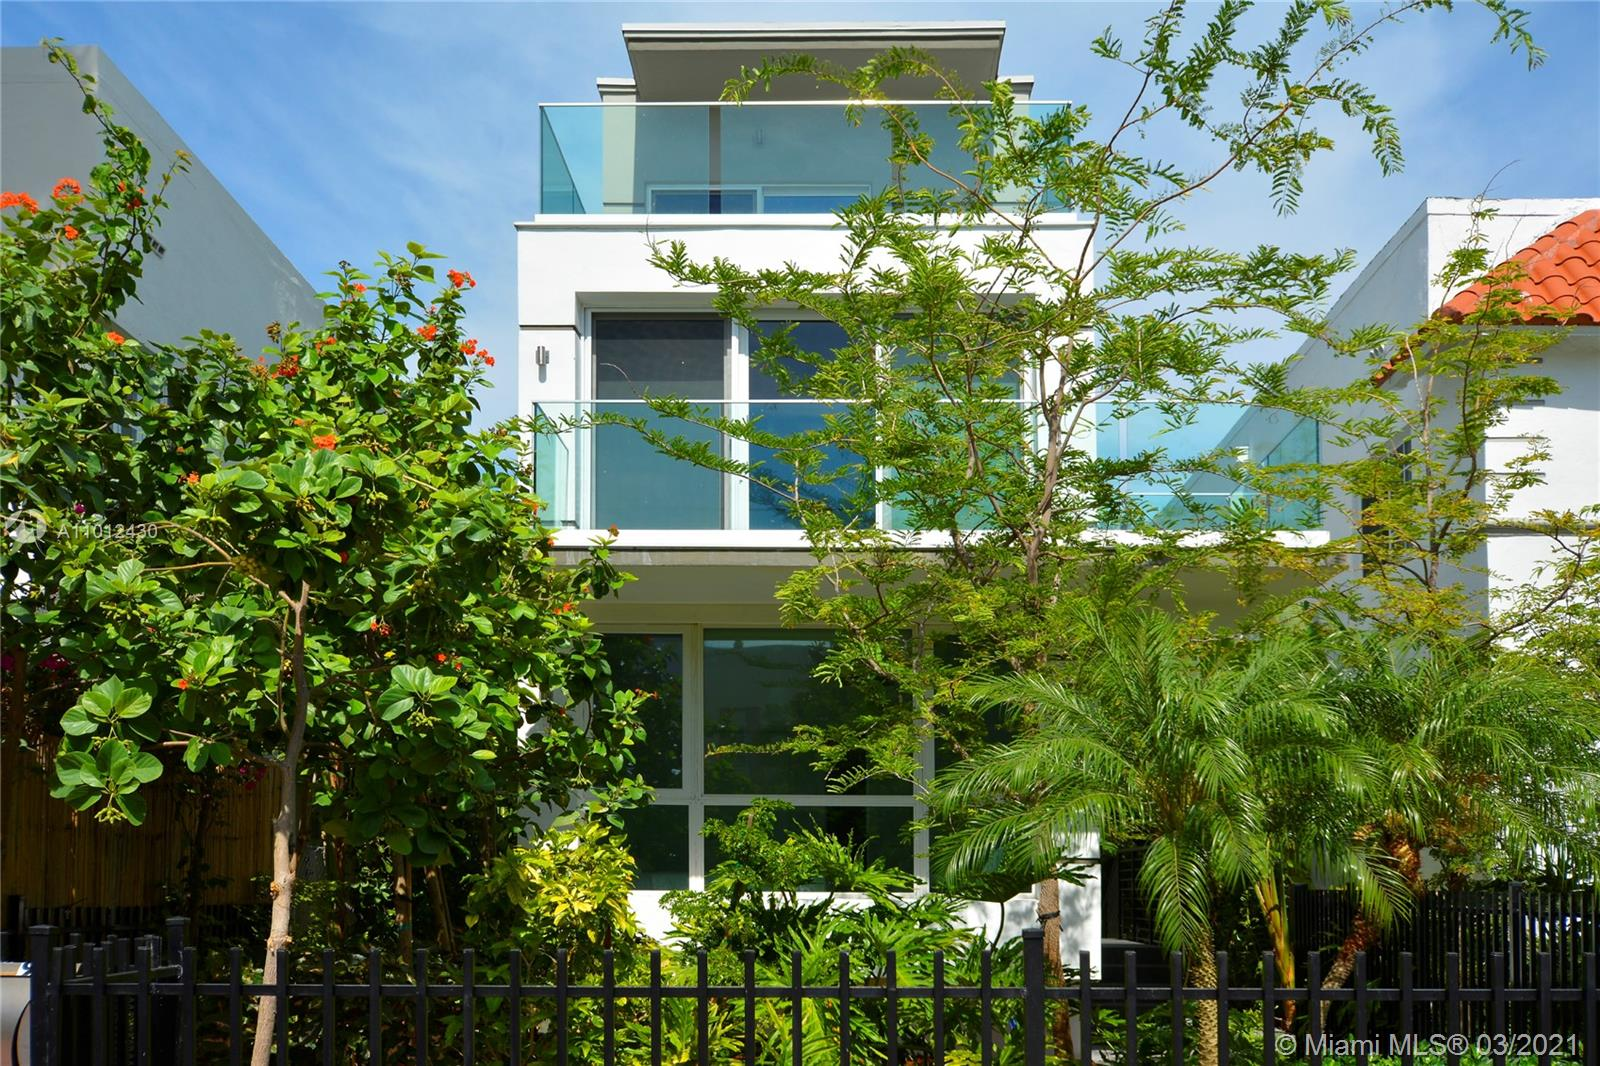 UNIQUE OPPORTUNITY TO OWN A 3 BD/3BTH MODERN TOWNHOUSE IN THE HEART OF SOUTH BEACH. ENJOY THE LARGE WINDOWS AT EVERY LEVEL GIVING GREAT NATURAL LIGHT IN EVERY ROOM. ENJOY YOUR PRIVATE AND LARGE TERRASSE ON YOUR WIDE MASTER BEDROOM AT THE 3RD FLOOR. EACH ON OF THE 3 BEDROOMS HAS ITS PRIVATES BATHROOM. THIS PROPERTY IS FULLY FURNISHED AND NICELY DECORATED. CONTACT US FOR A PRIVATE SHOWING.